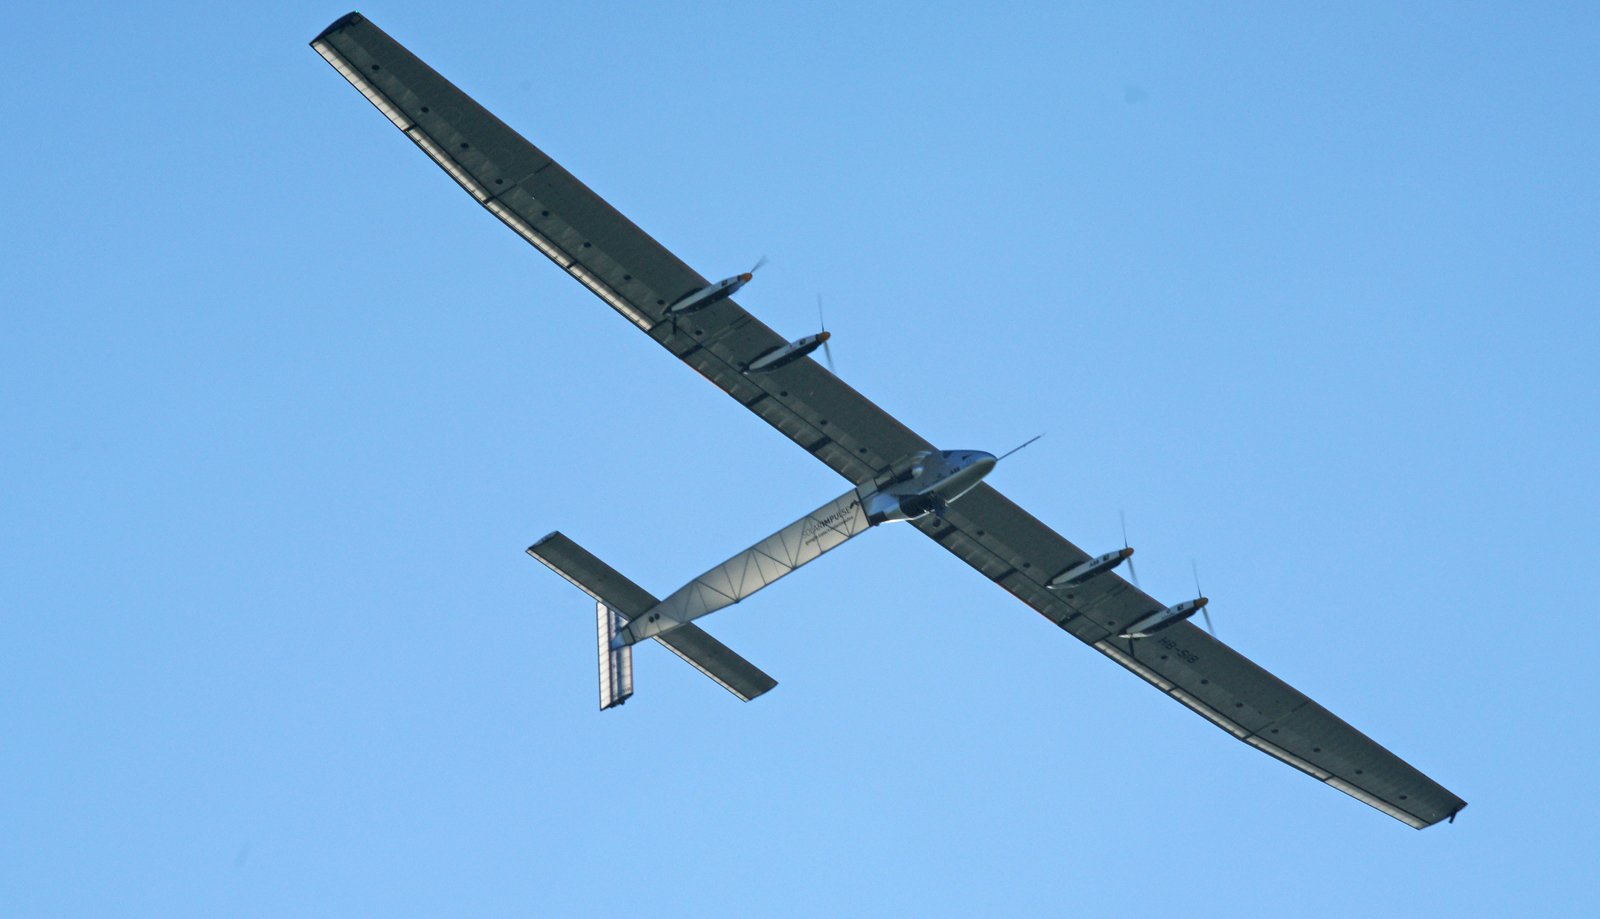 Solar Impulse 2 HB-SIB first aircaft around the world on solar power